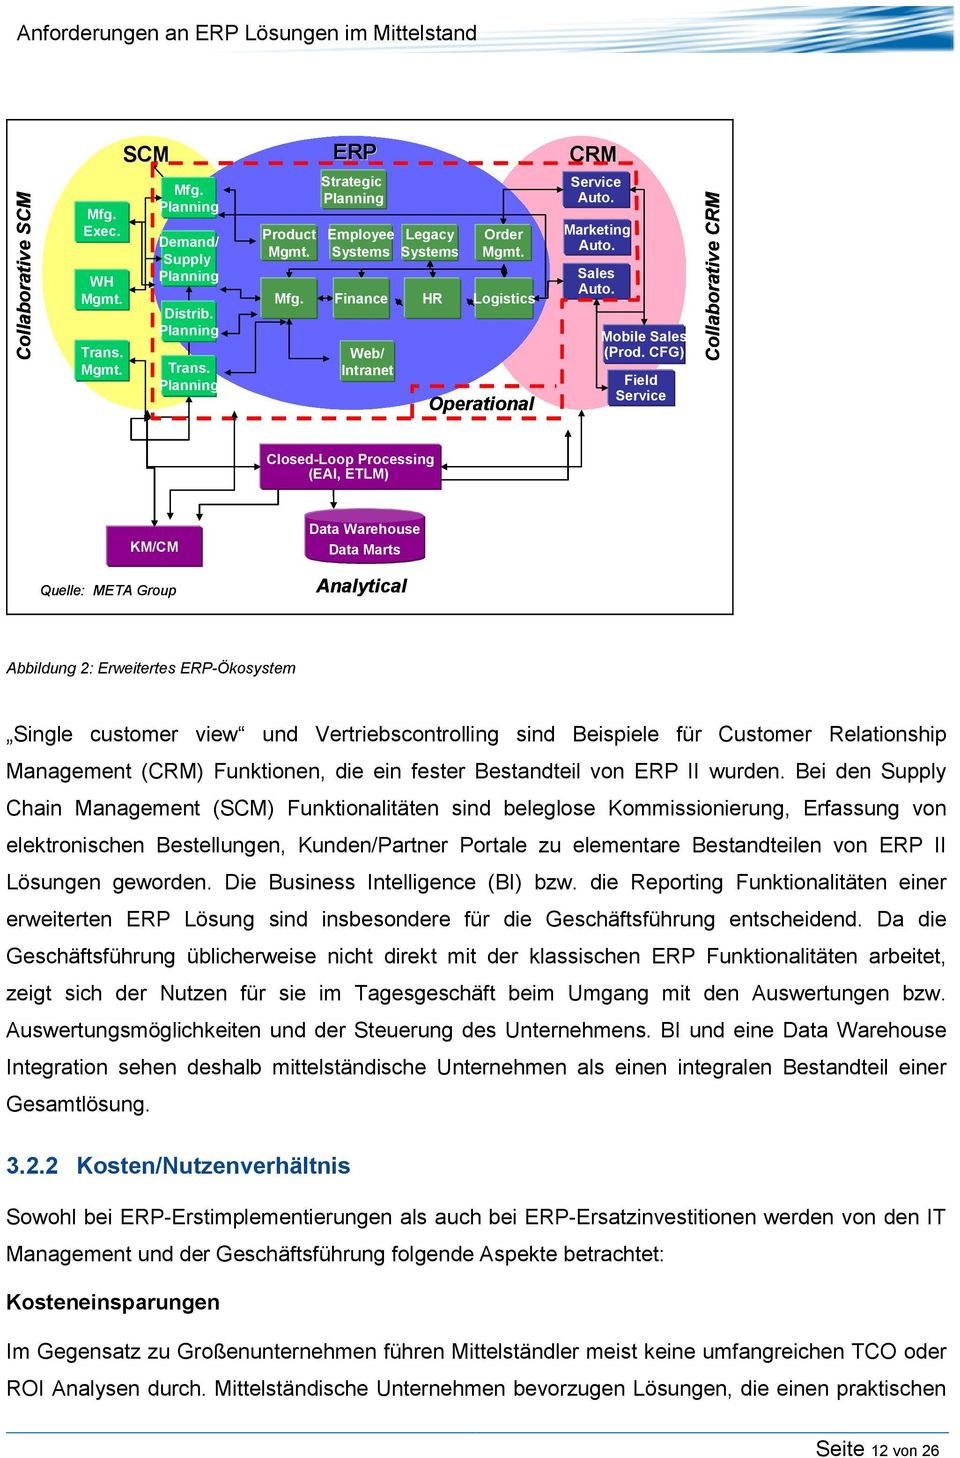 CFG) Field Service Collaborative CRM Closed-Loop Processing (EAI, ETLM) KM/CM Data Warehouse Data Marts Quelle: META Group Analytical Abbildung 2: Erweitertes ERP-Ökosystem Single customer view und